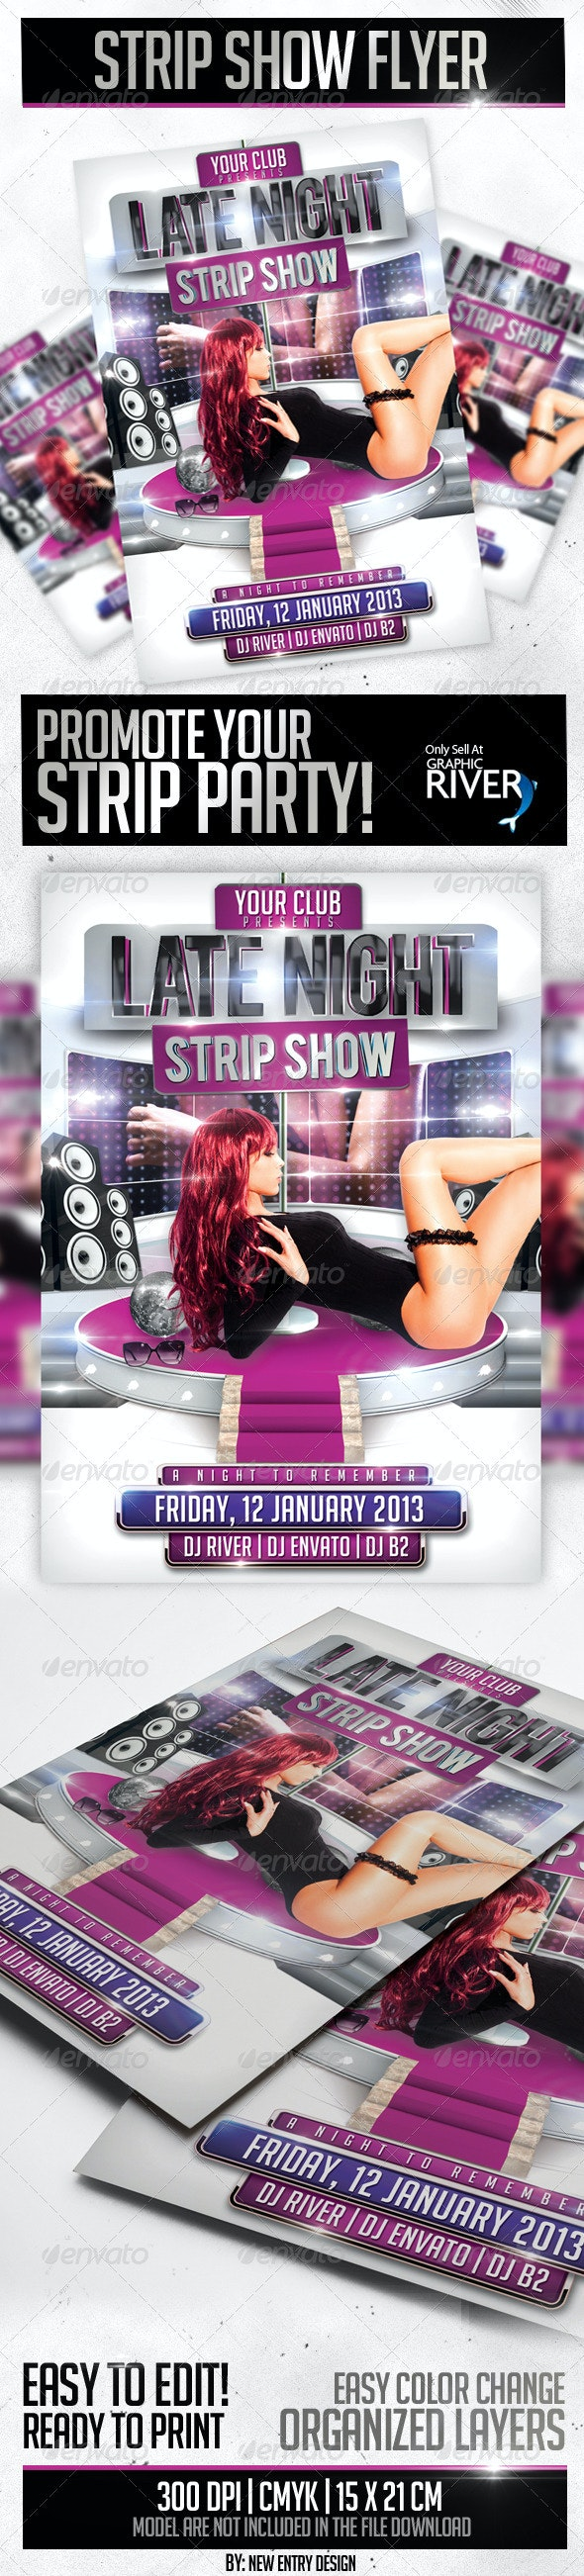 Strip Show Flyer Template - Clubs & Parties Events